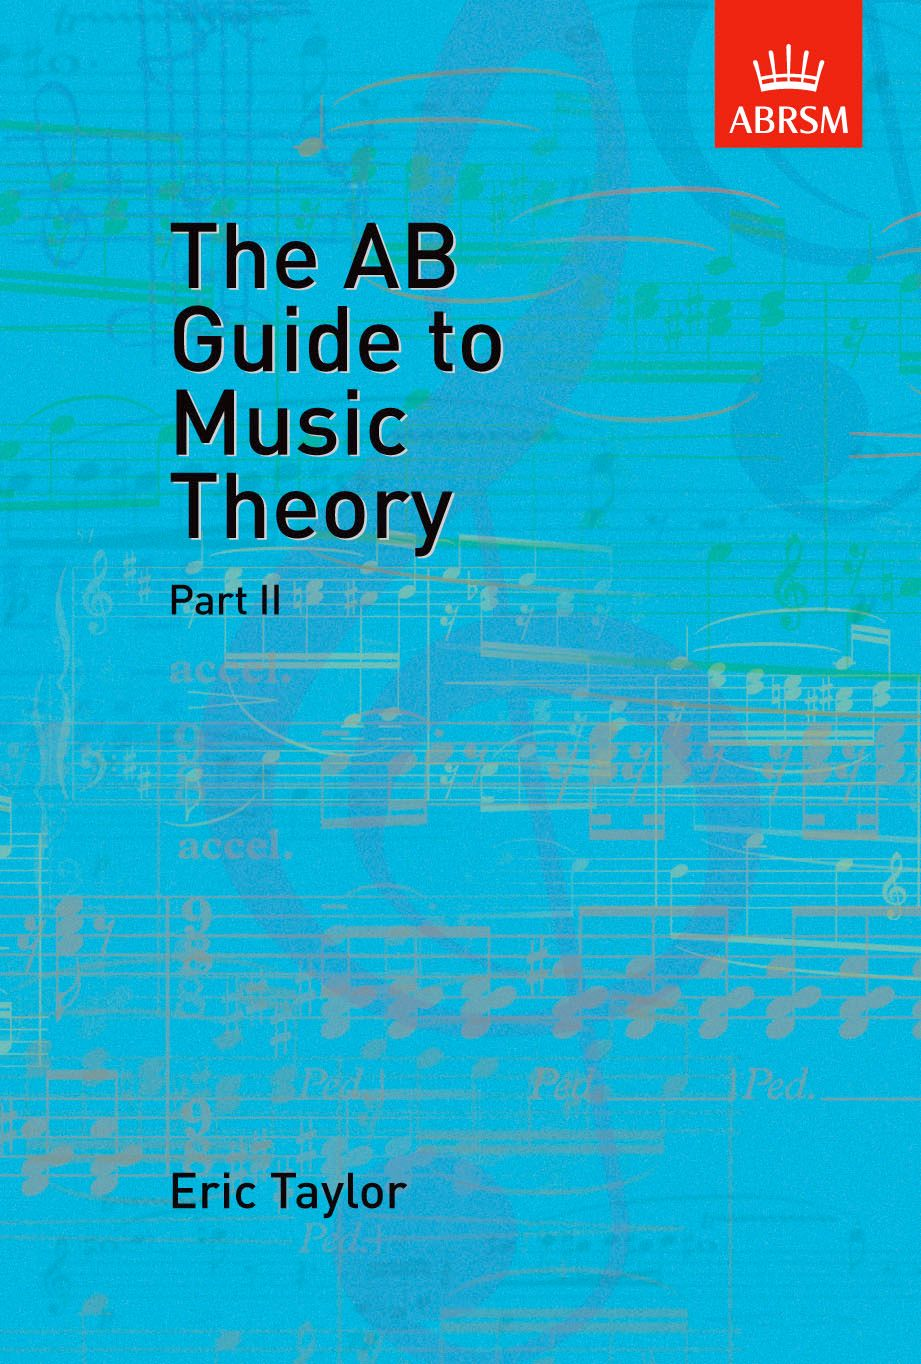 The AB Guide to Music Theory - Part II